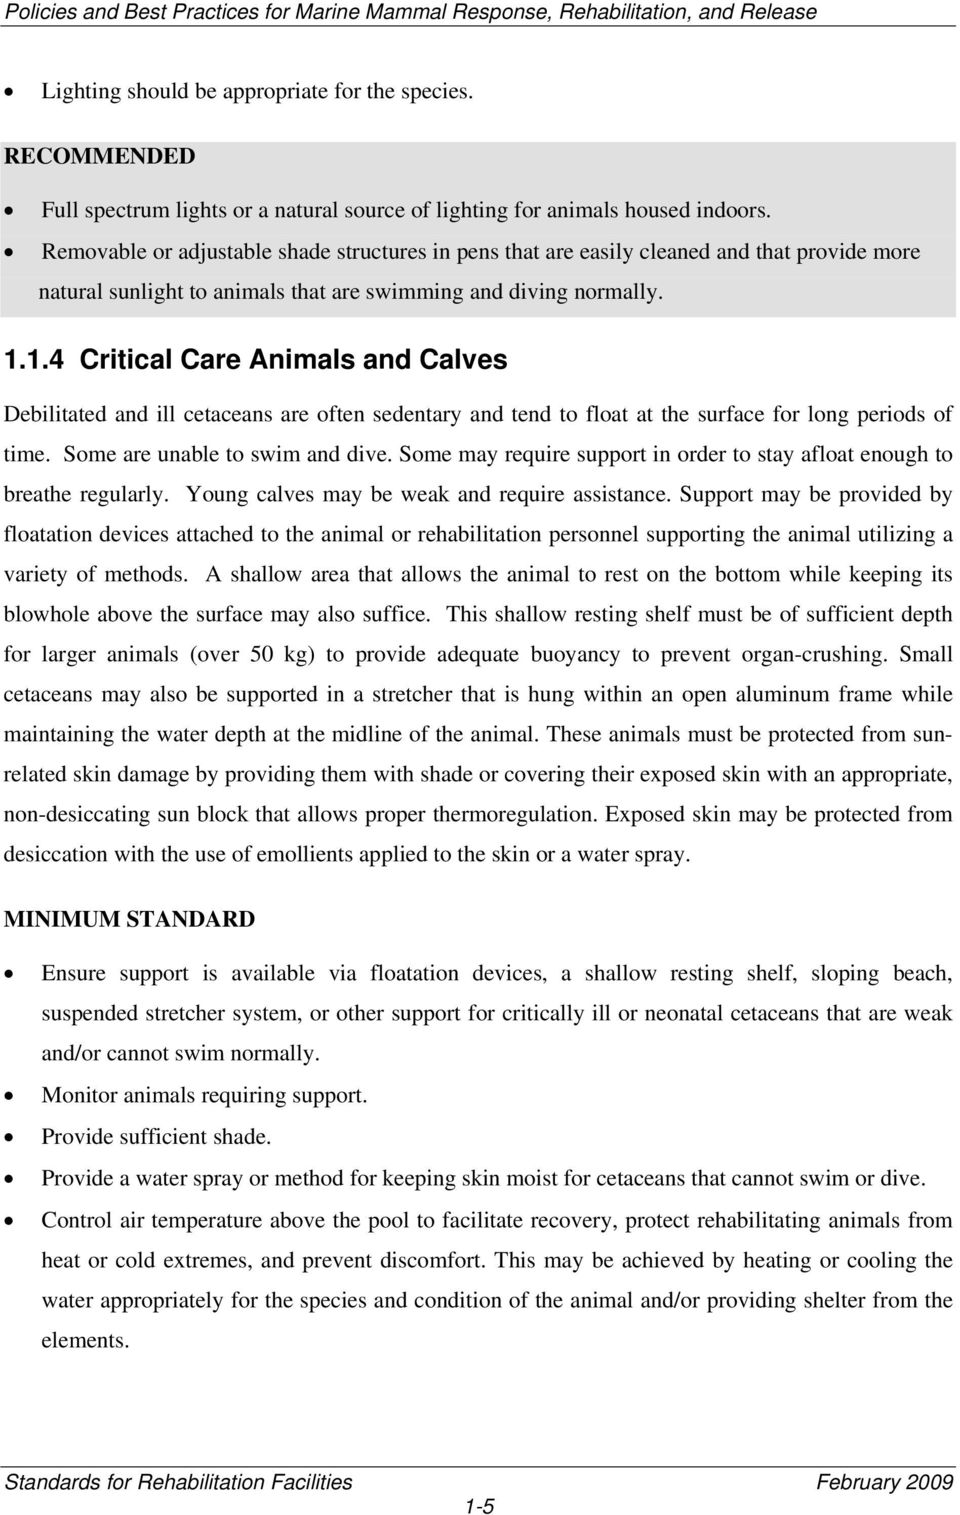 1.4 Critical Care Animals and Calves Debilitated and ill cetaceans are often sedentary and tend to float at the surface for long periods of time. Some are unable to swim and dive.